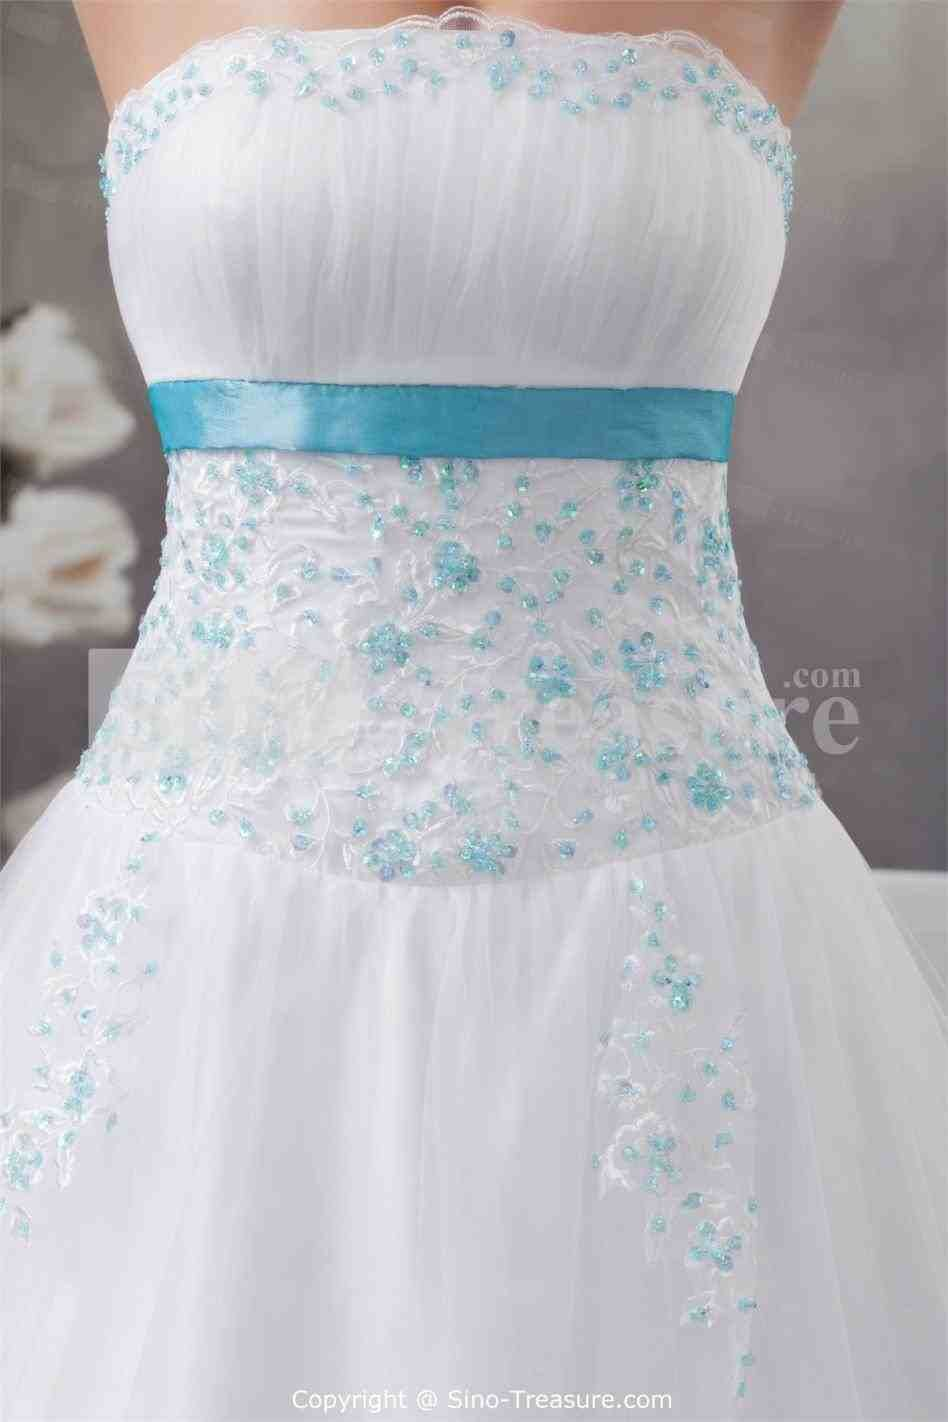 Top new post royal blue and white wedding dresses visit